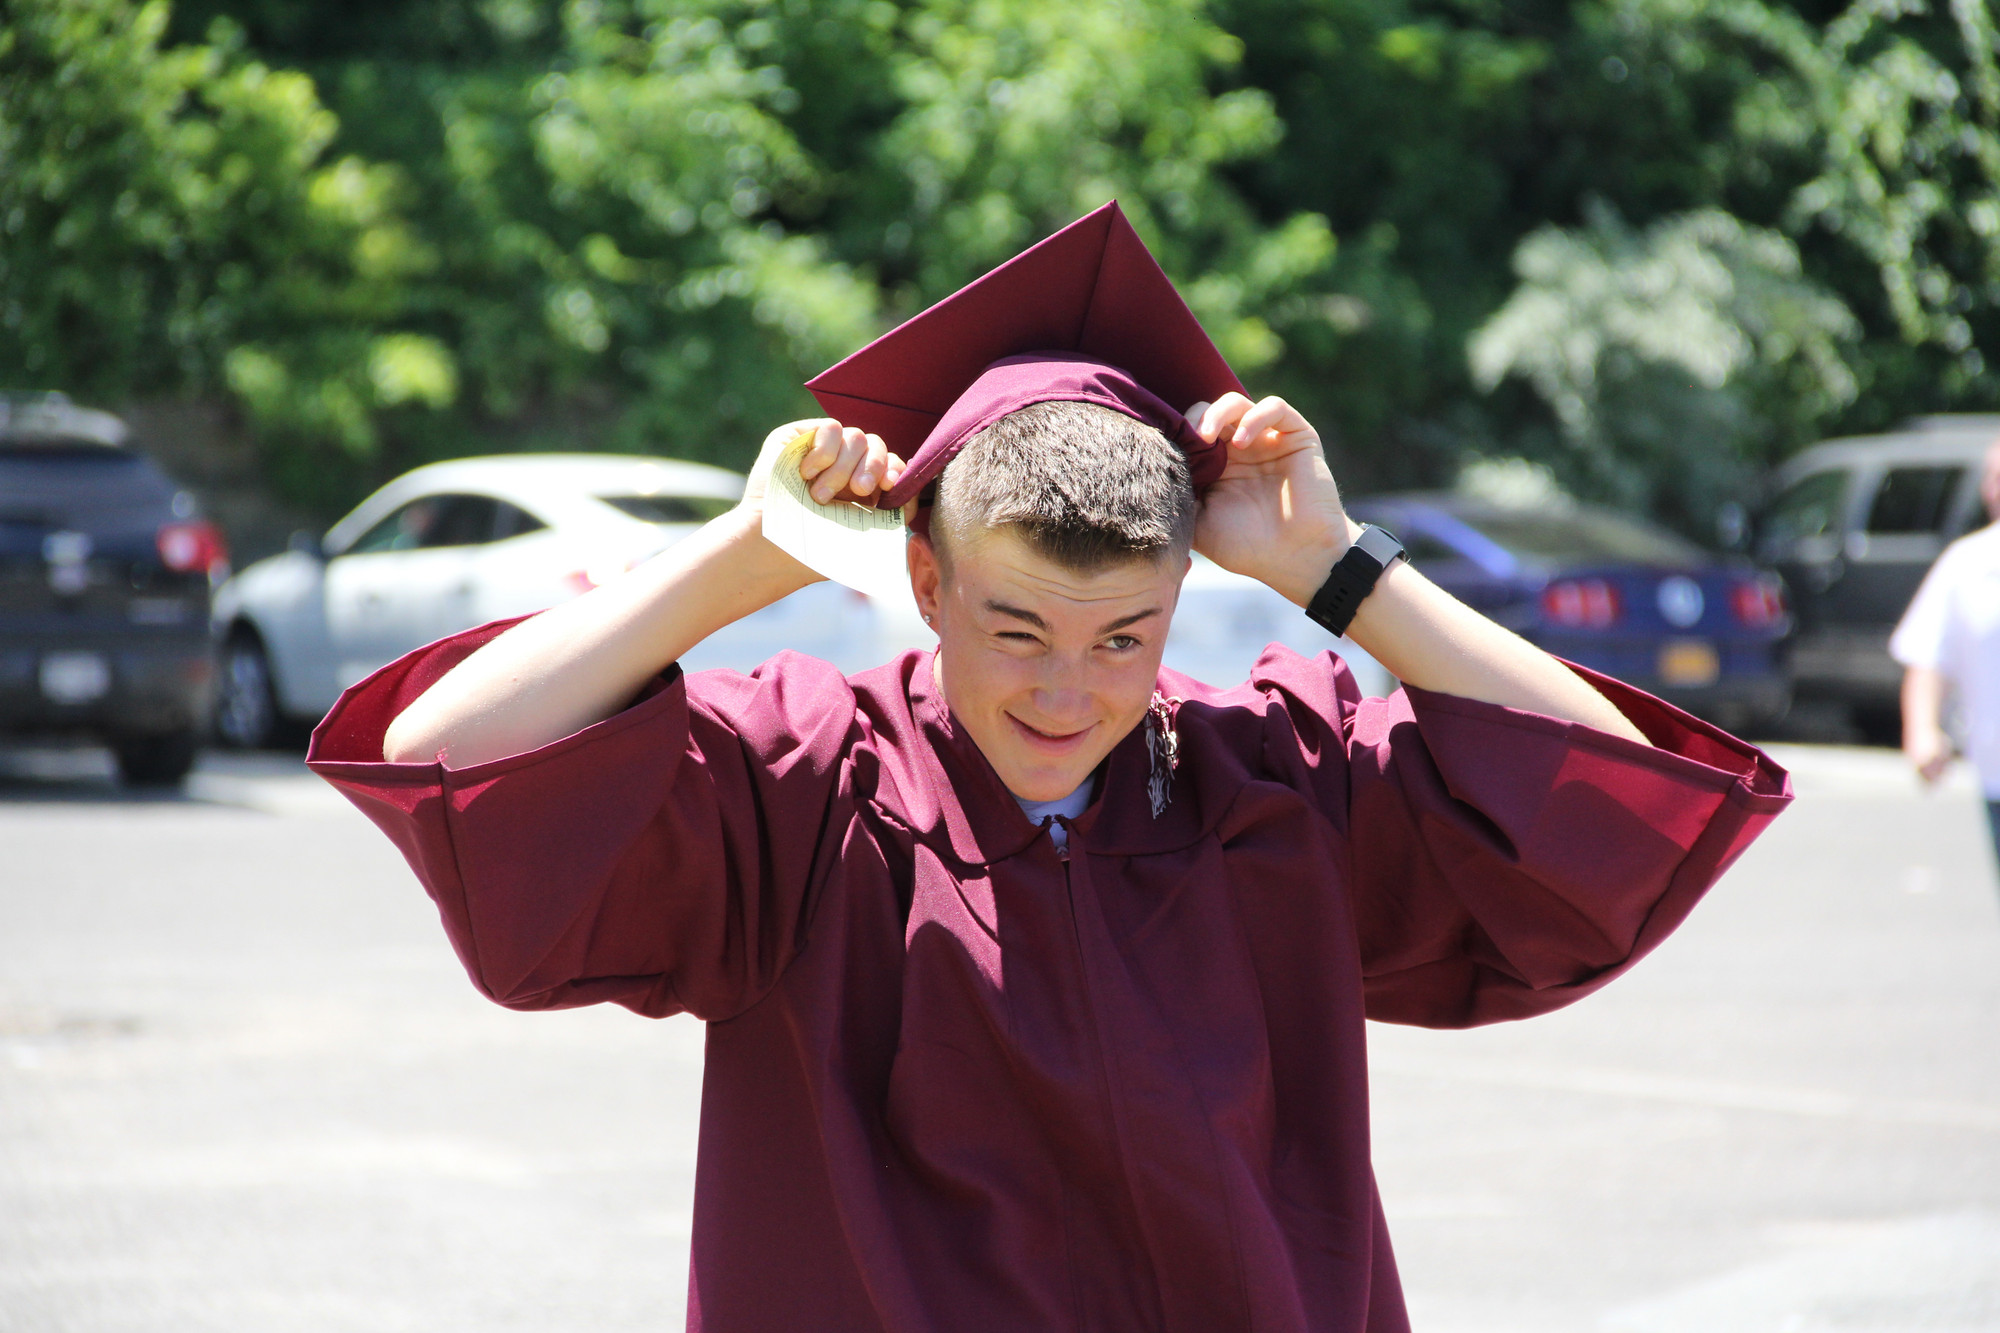 Tyler Clougher tried to fix his mortarboard before heading into the NYCB Theater for Mepham's graduation.